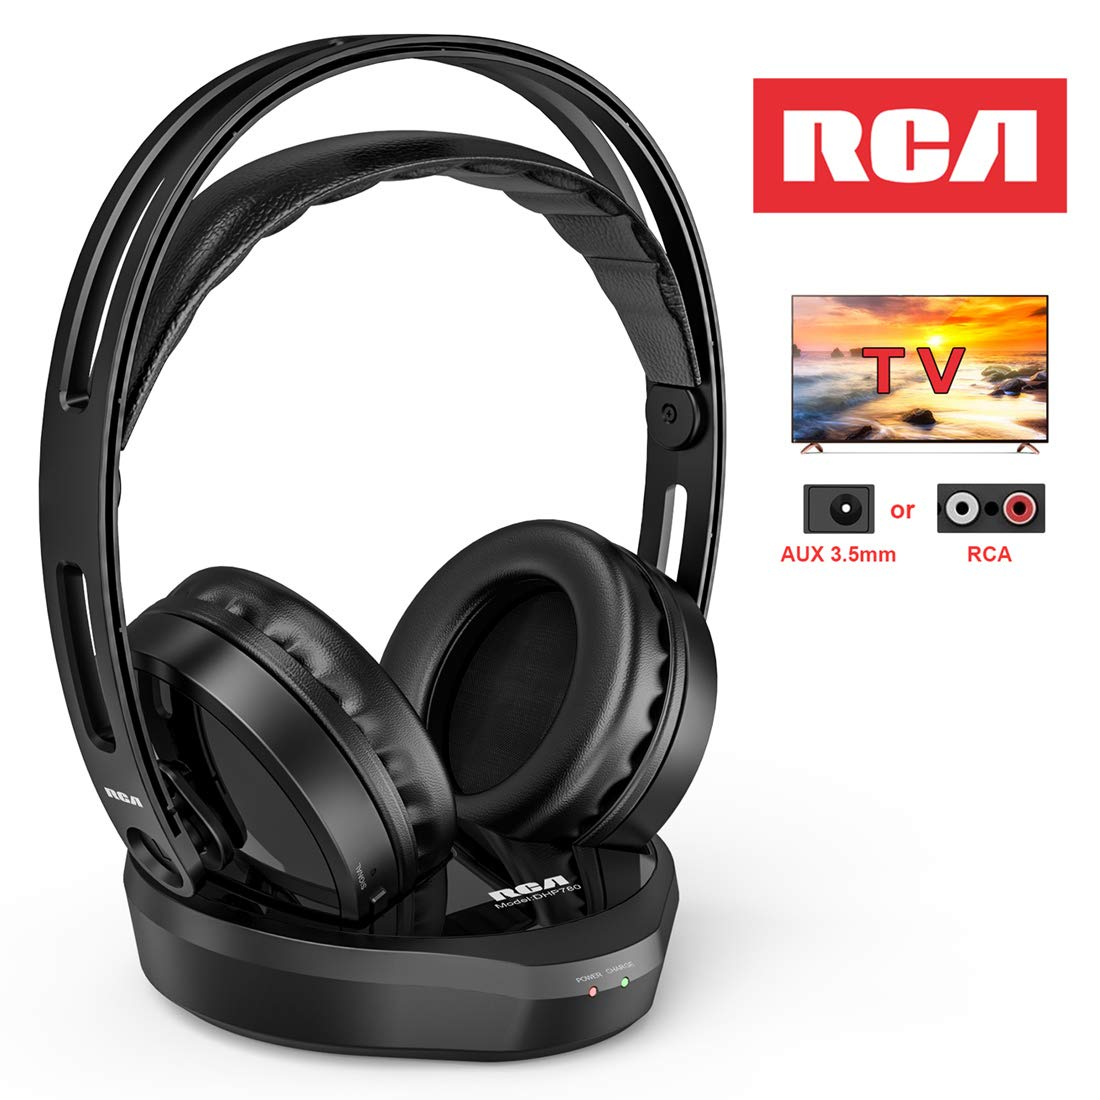 Wireless TV Headphones, RCA Over Ear Hi-Fi Stereo Headset for TV Watching PC VCD, Headphones with 2.4GHz RF Transmitter, Charging Dock for Seniors Hearing Impaired, 100ft Range, Rechargeable, Black by RCA